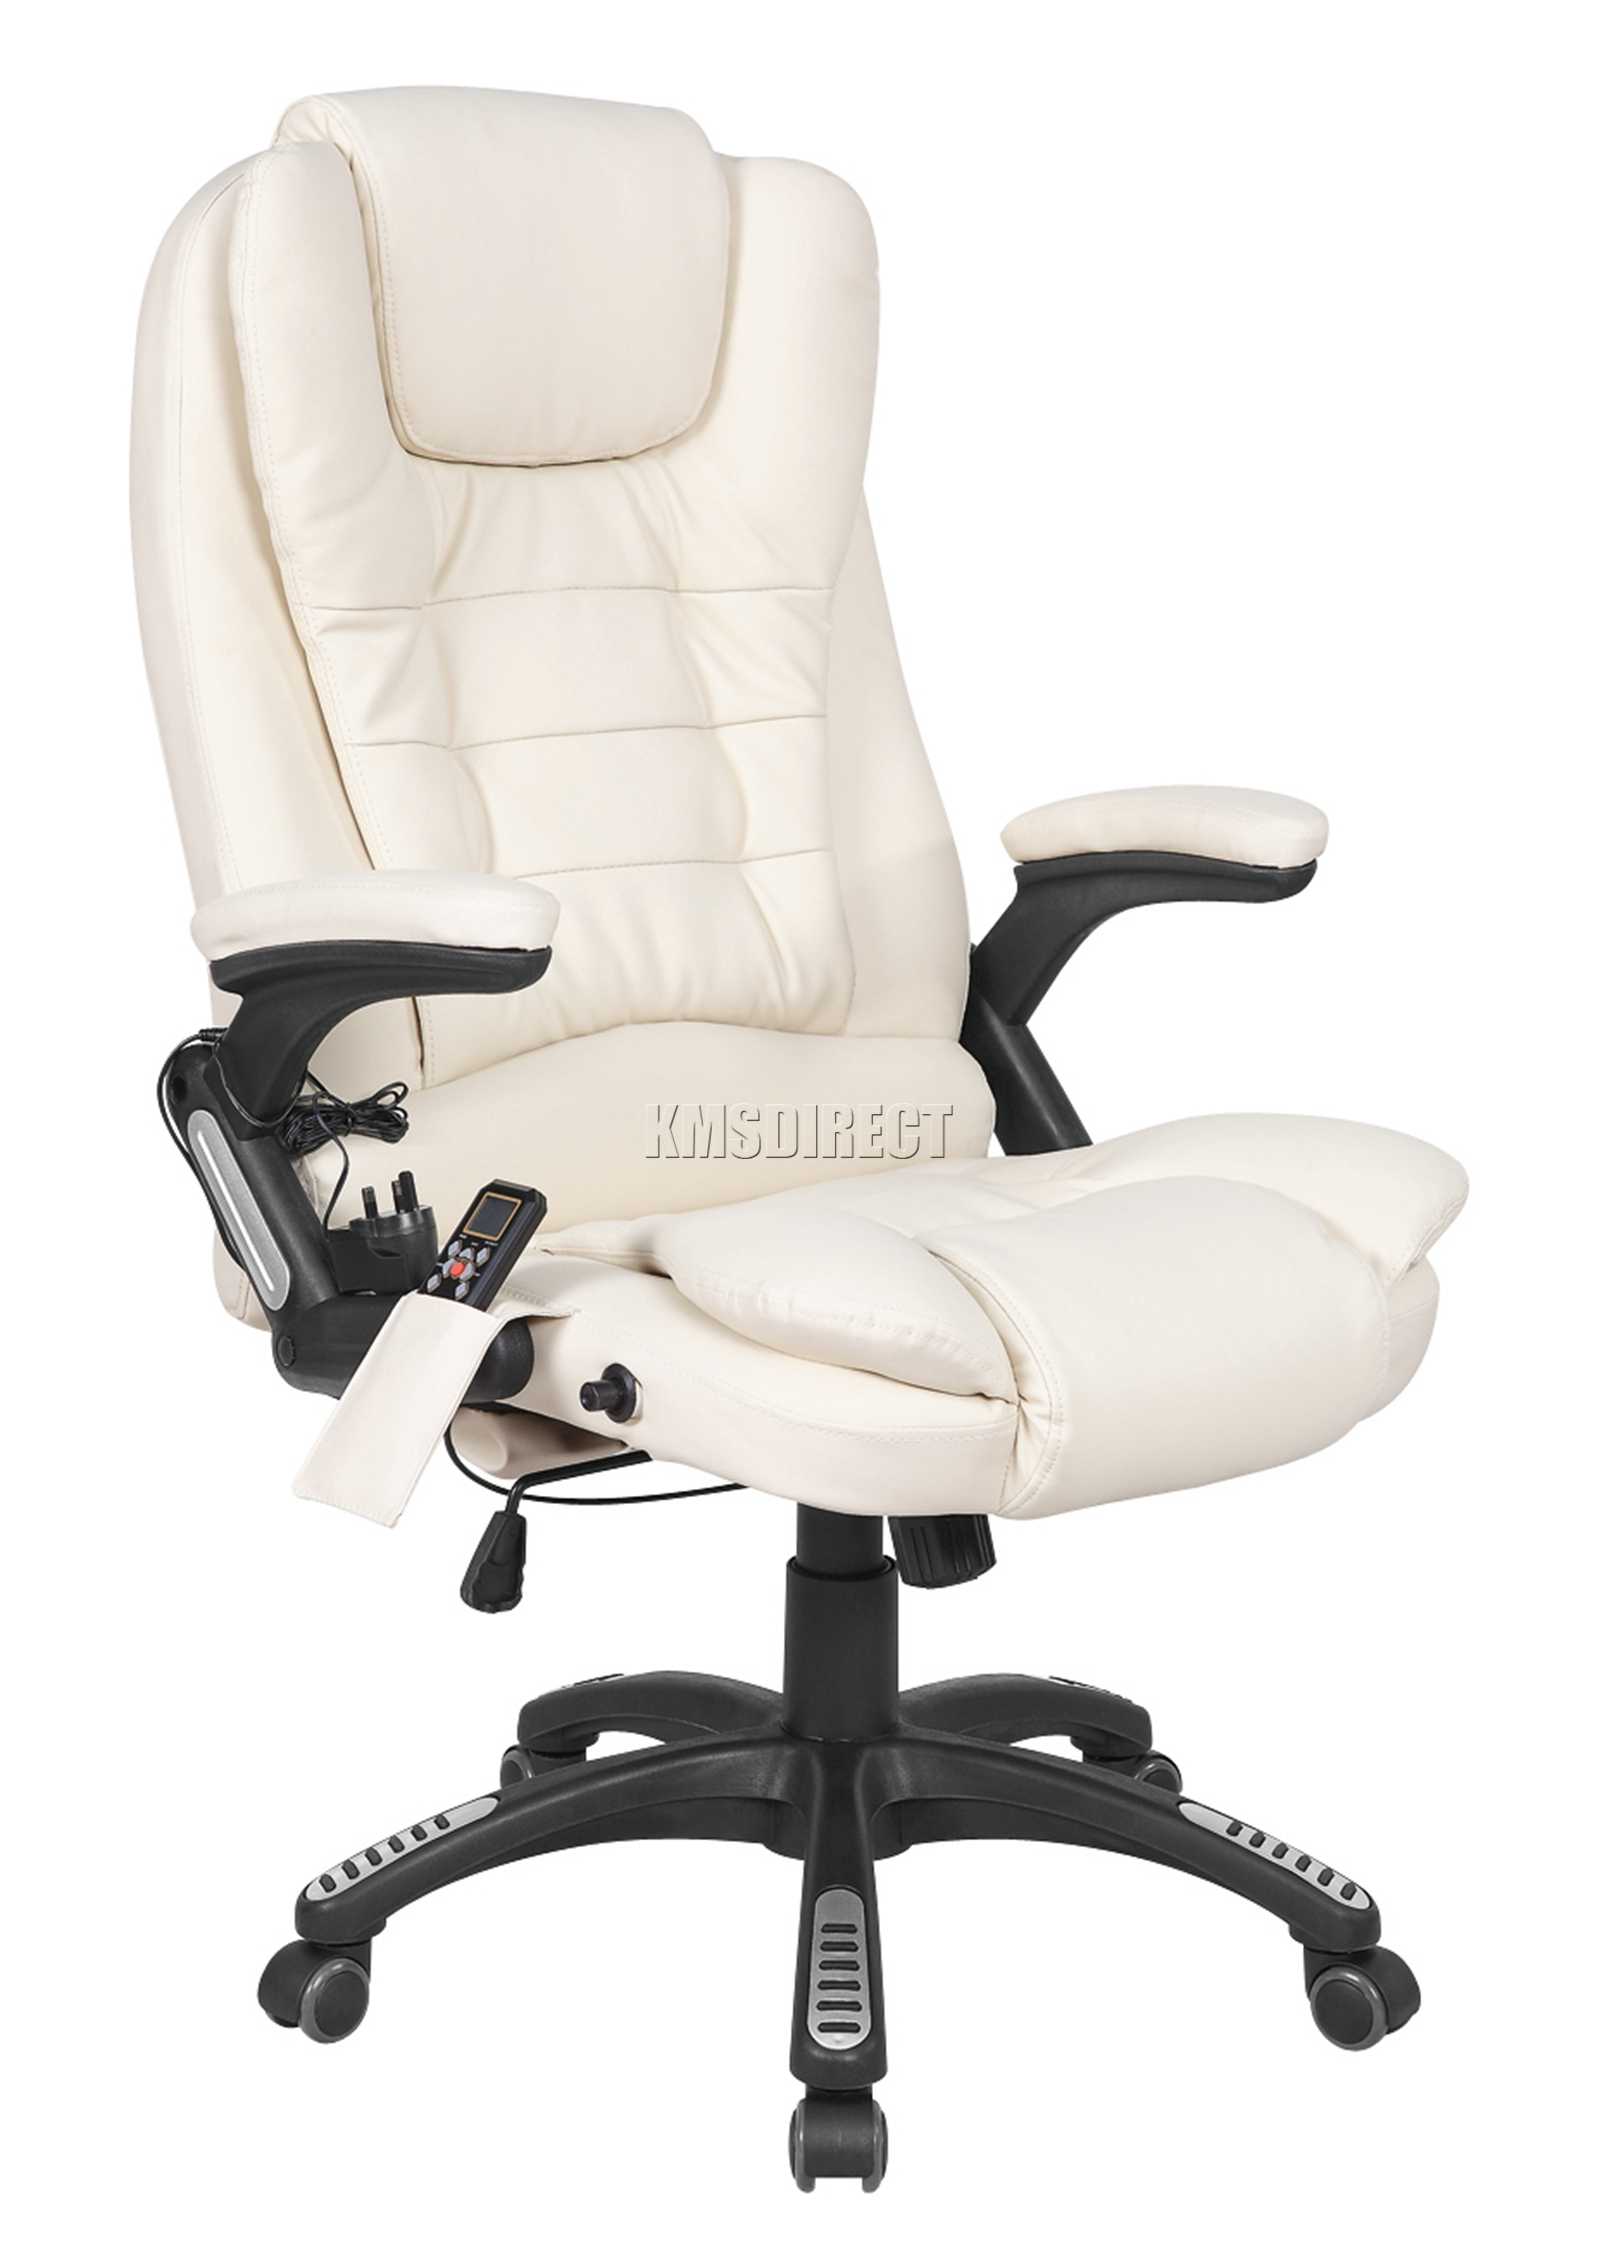 Recliner Computer Chair Westwood Heated Massage Office Chair Leather Gaming